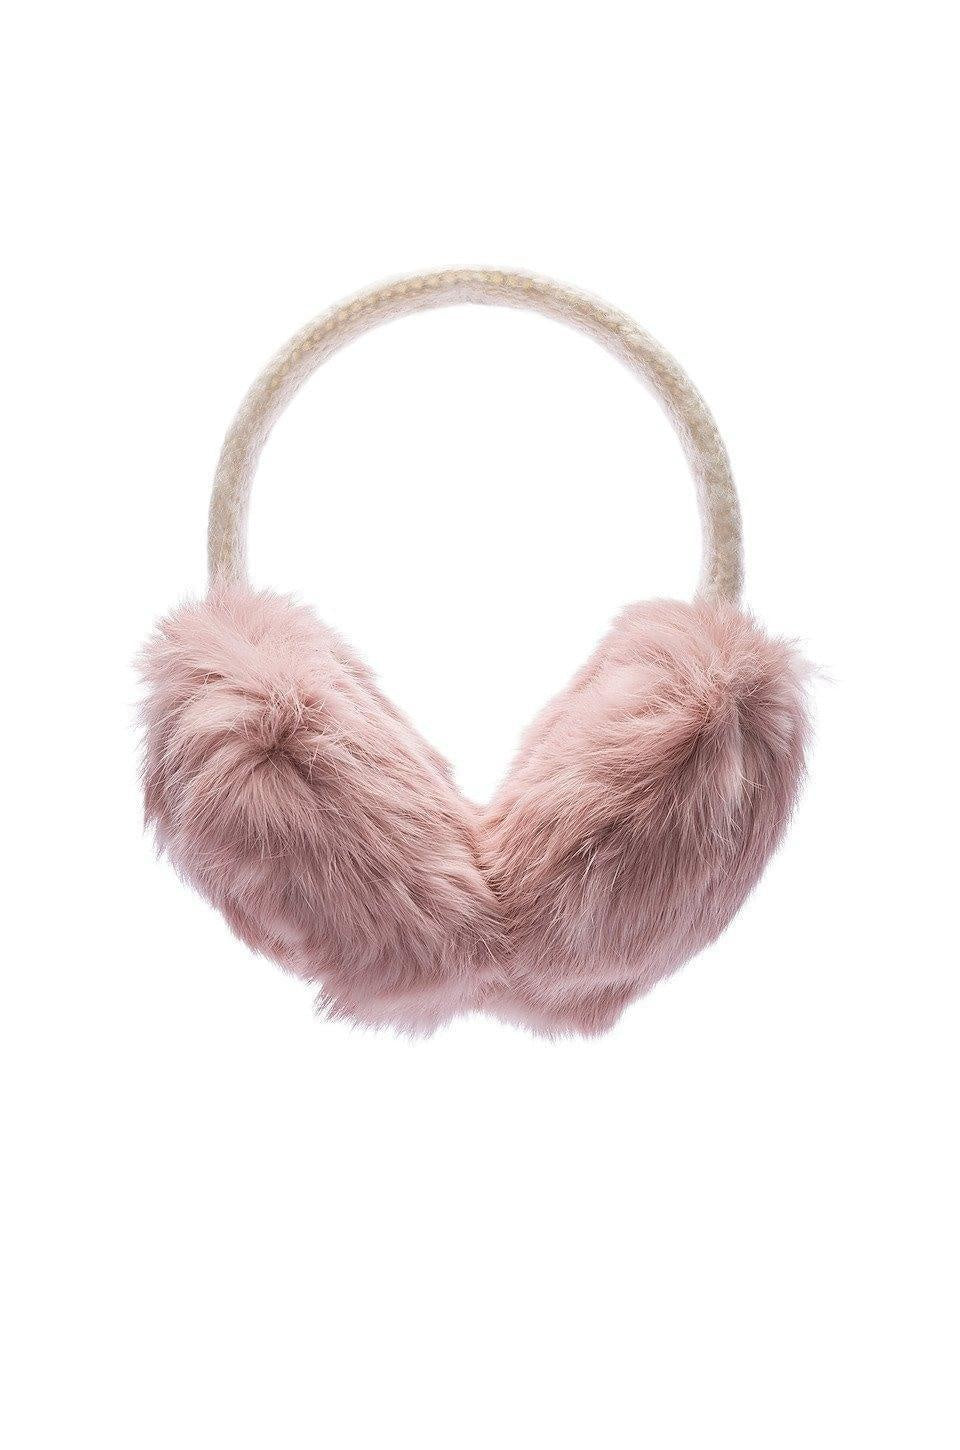 Hat Attack Knit Rabbit Earmuffs Brand New!,your-fashions-for-less,Hat Attack,Earmuffs.